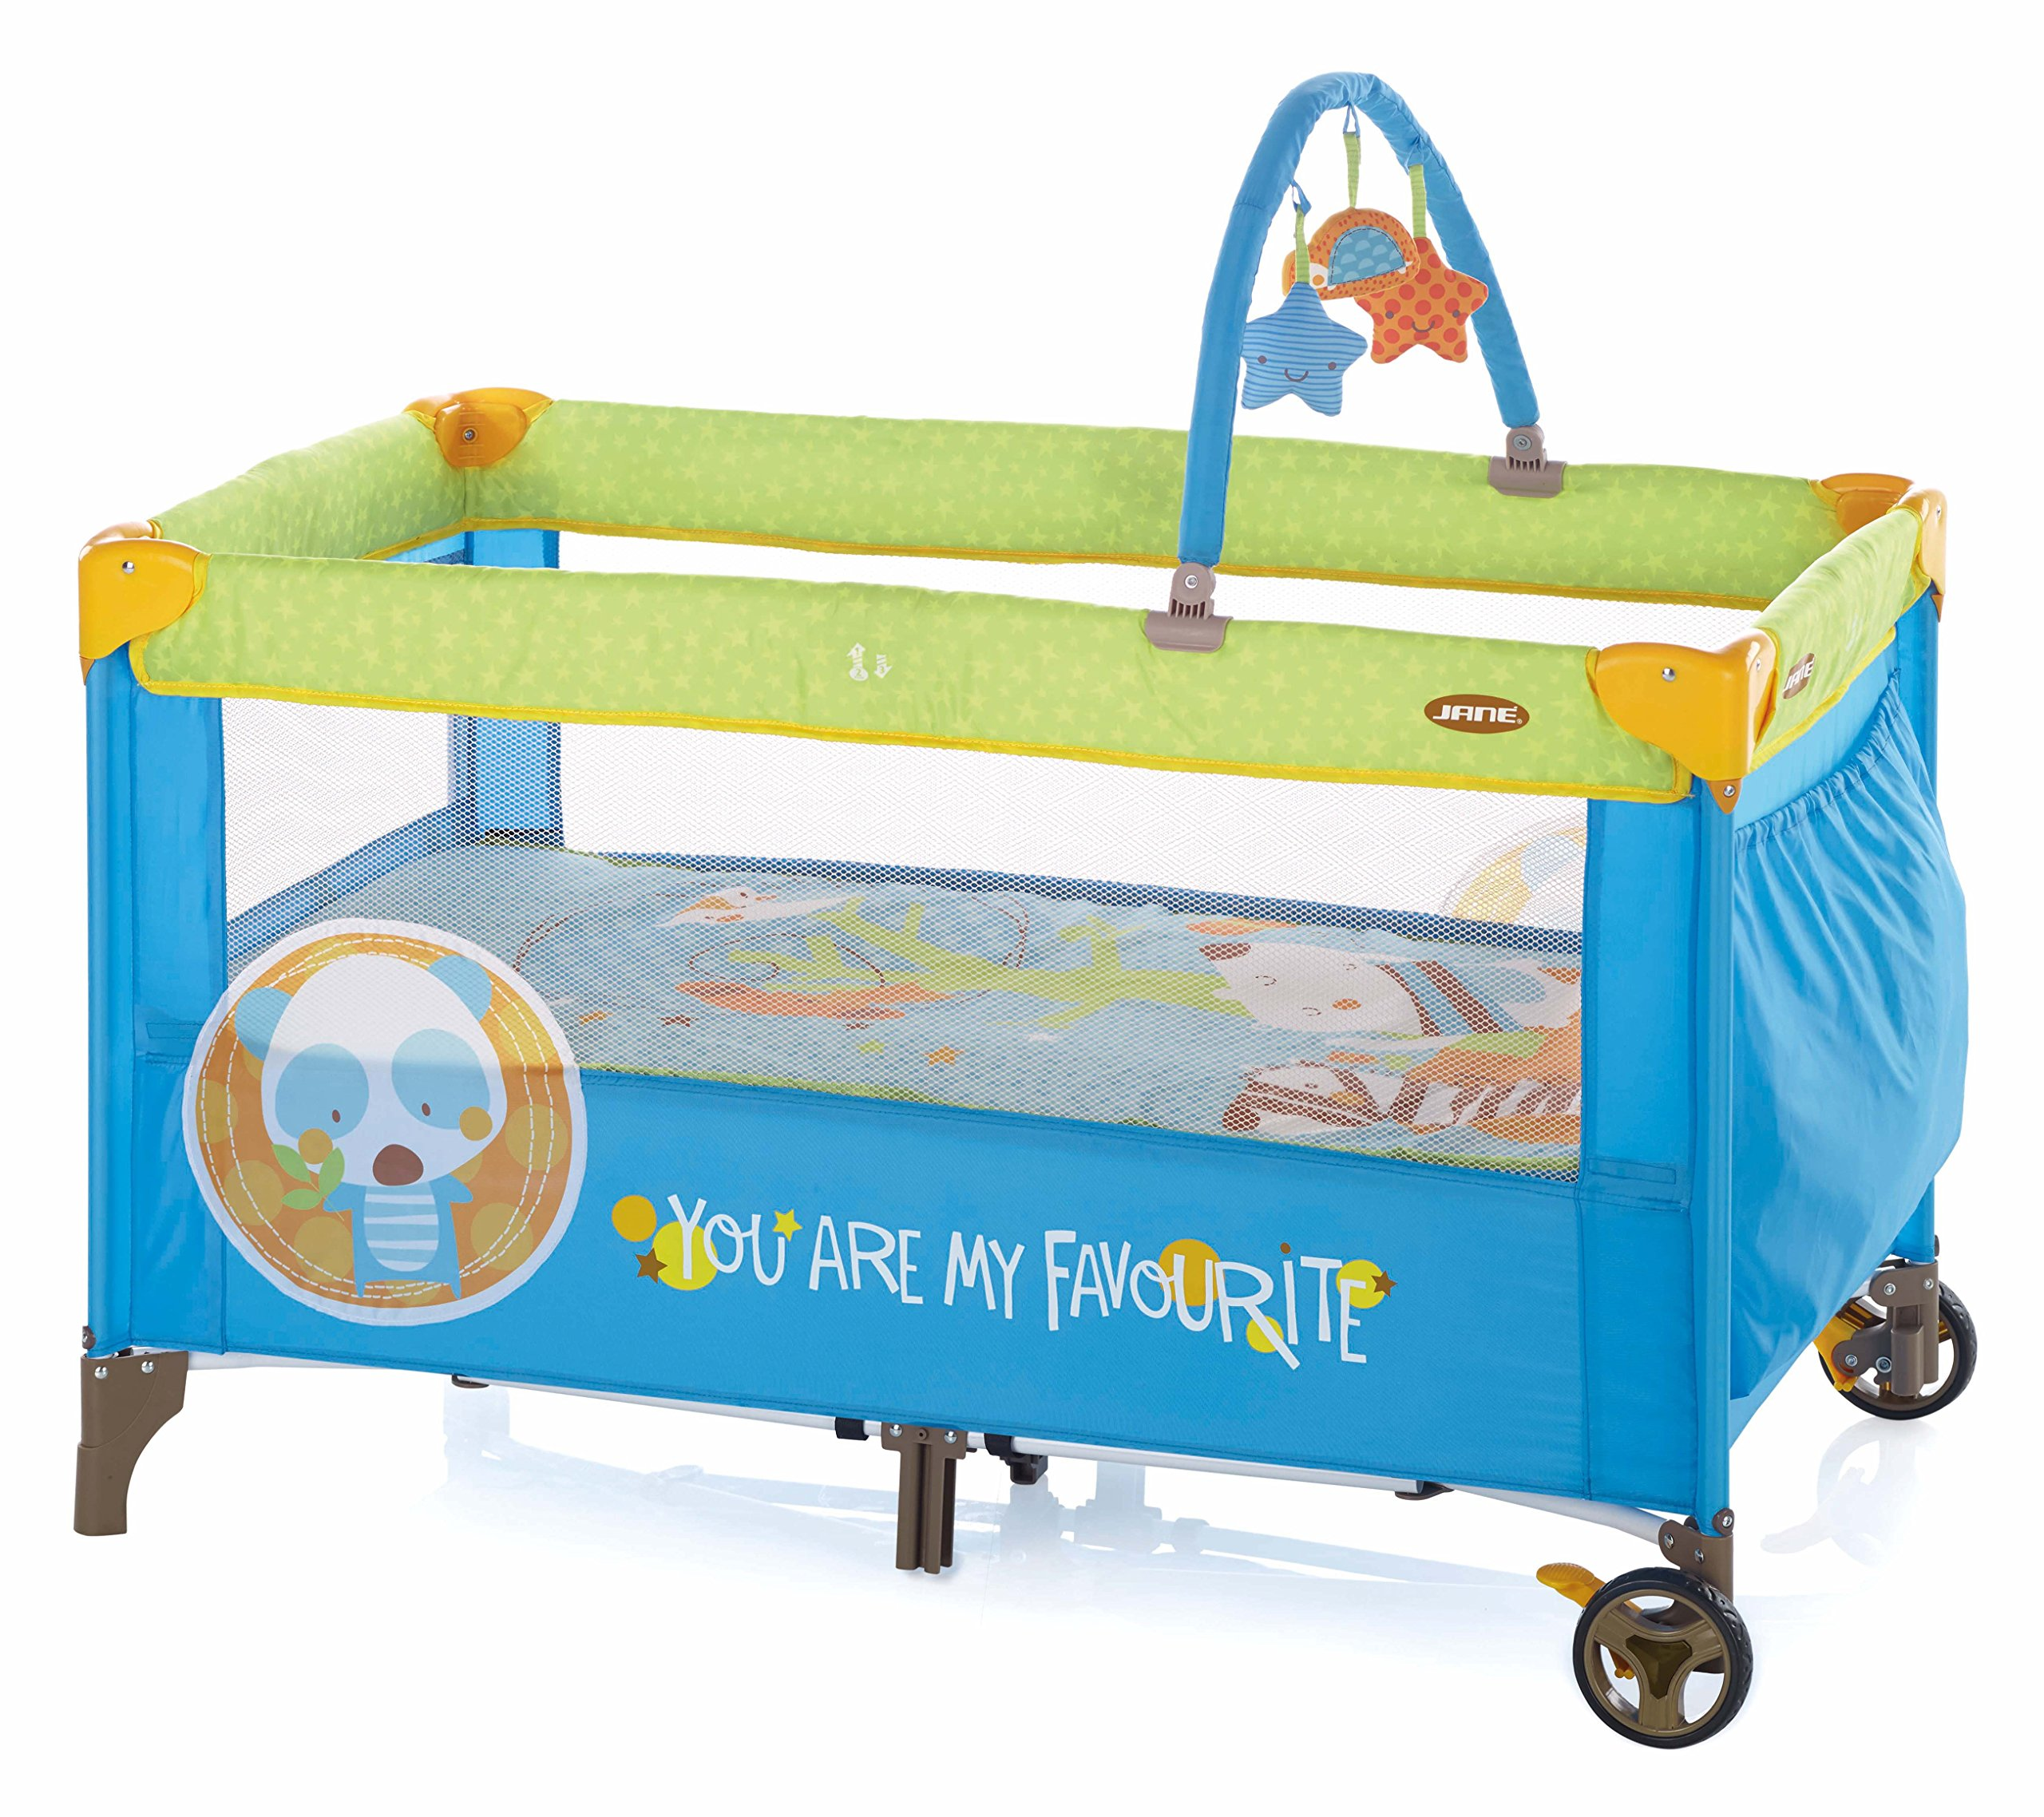 Jane Duo Level Travel Cot (Animal Dots) Jane, Inc. Suitable from birth to 3 years. 2 position base. The highest position is ideal for newborns and helps reduce the strain on your back when putting your baby down to sleep. Toy arch with toys included. 1